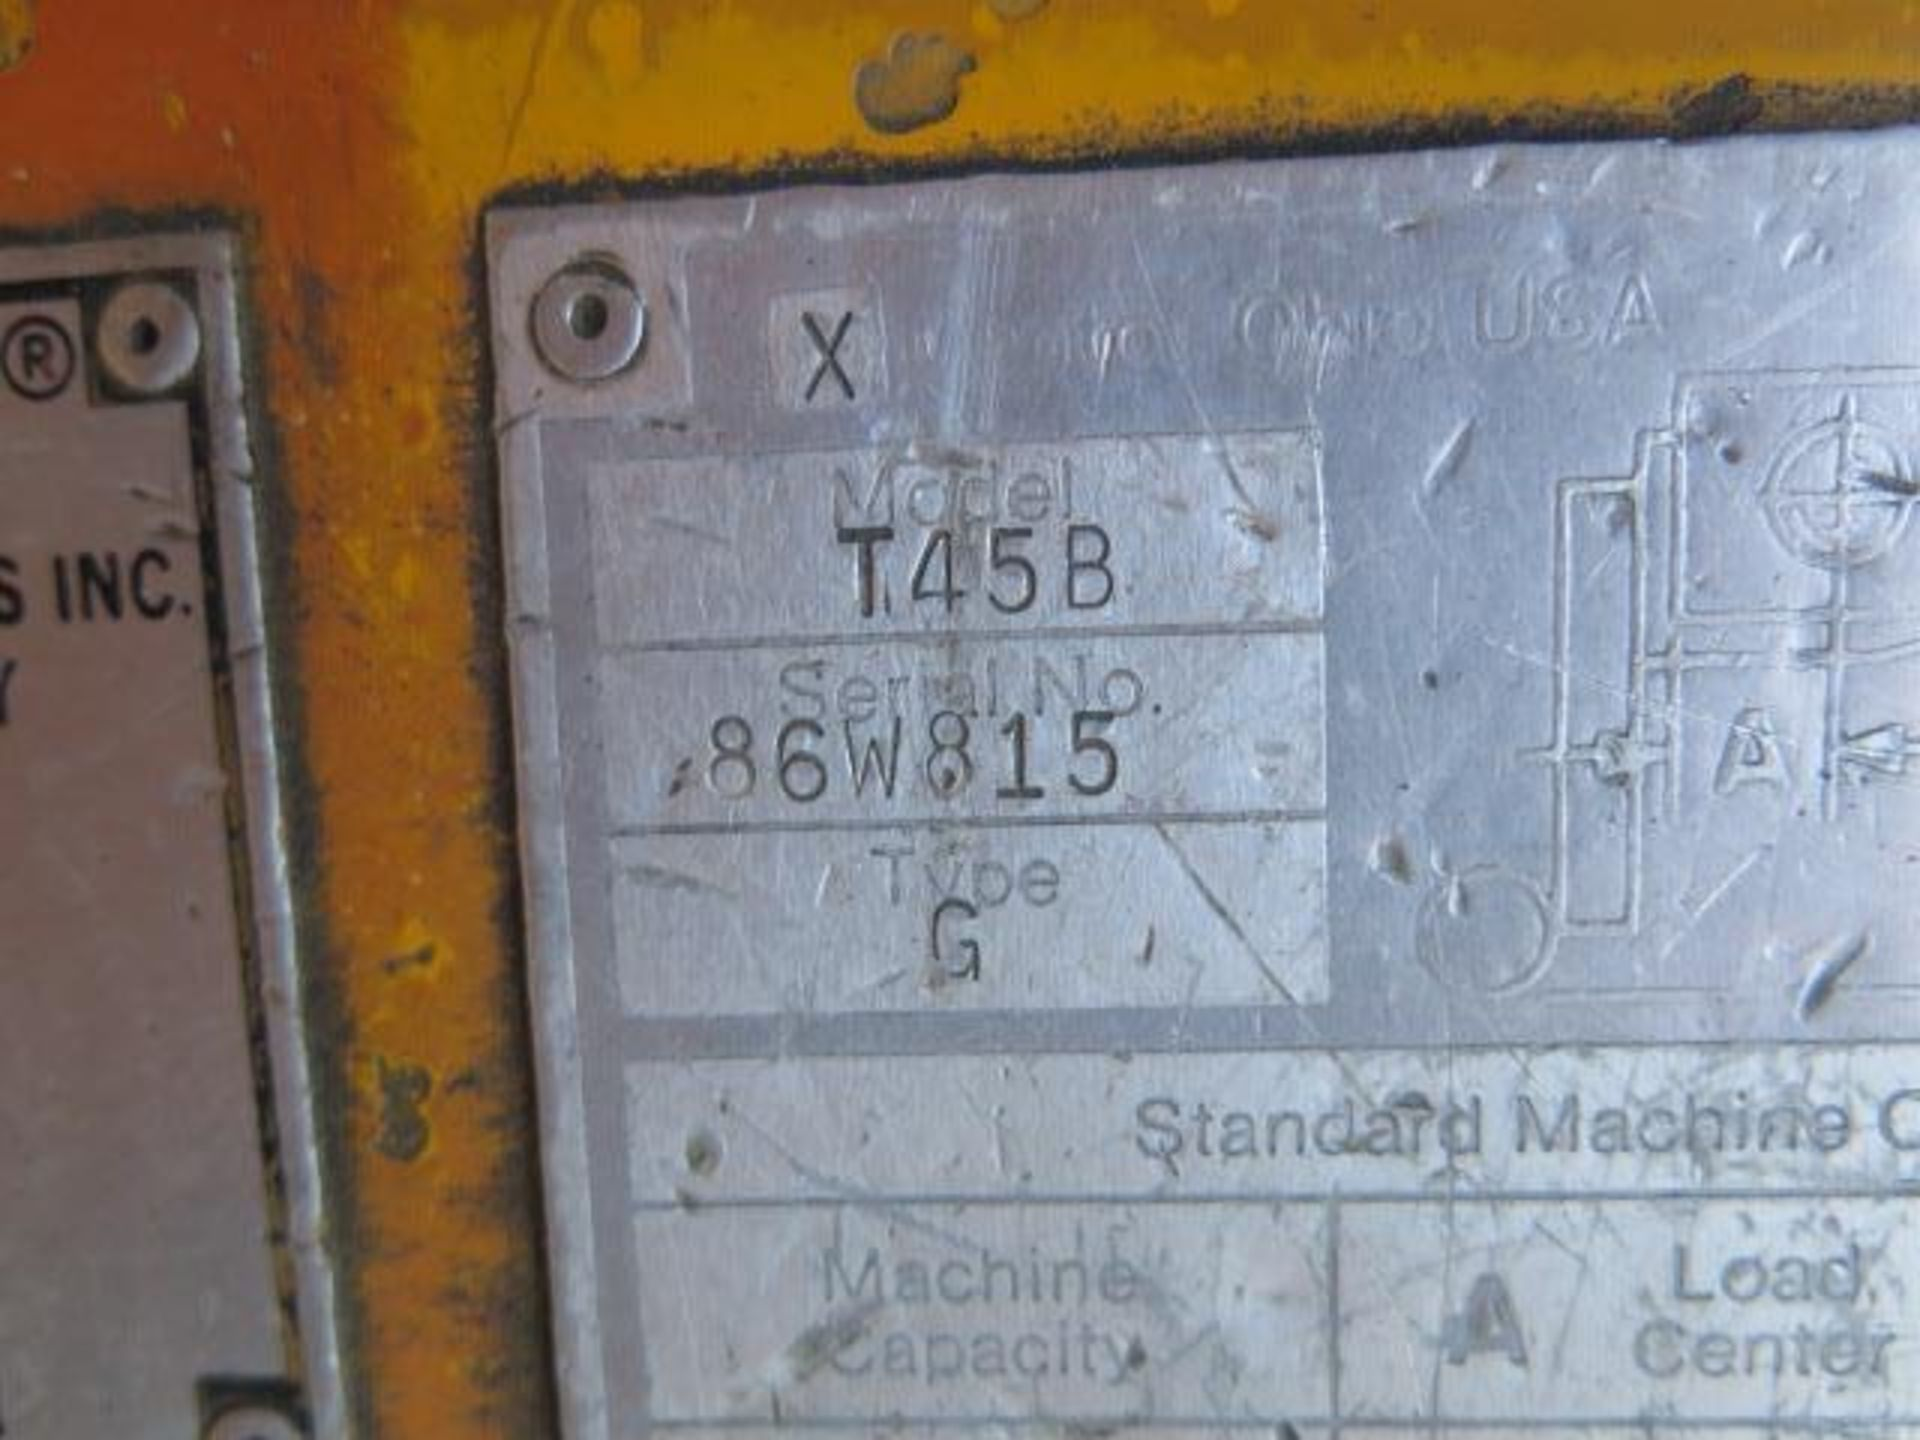 Caterpillar 4500 Lb Cap LPG Forklift s/n F235-83-2201172 (Condition Unknown) SOLD AS-IS - Image 12 of 13